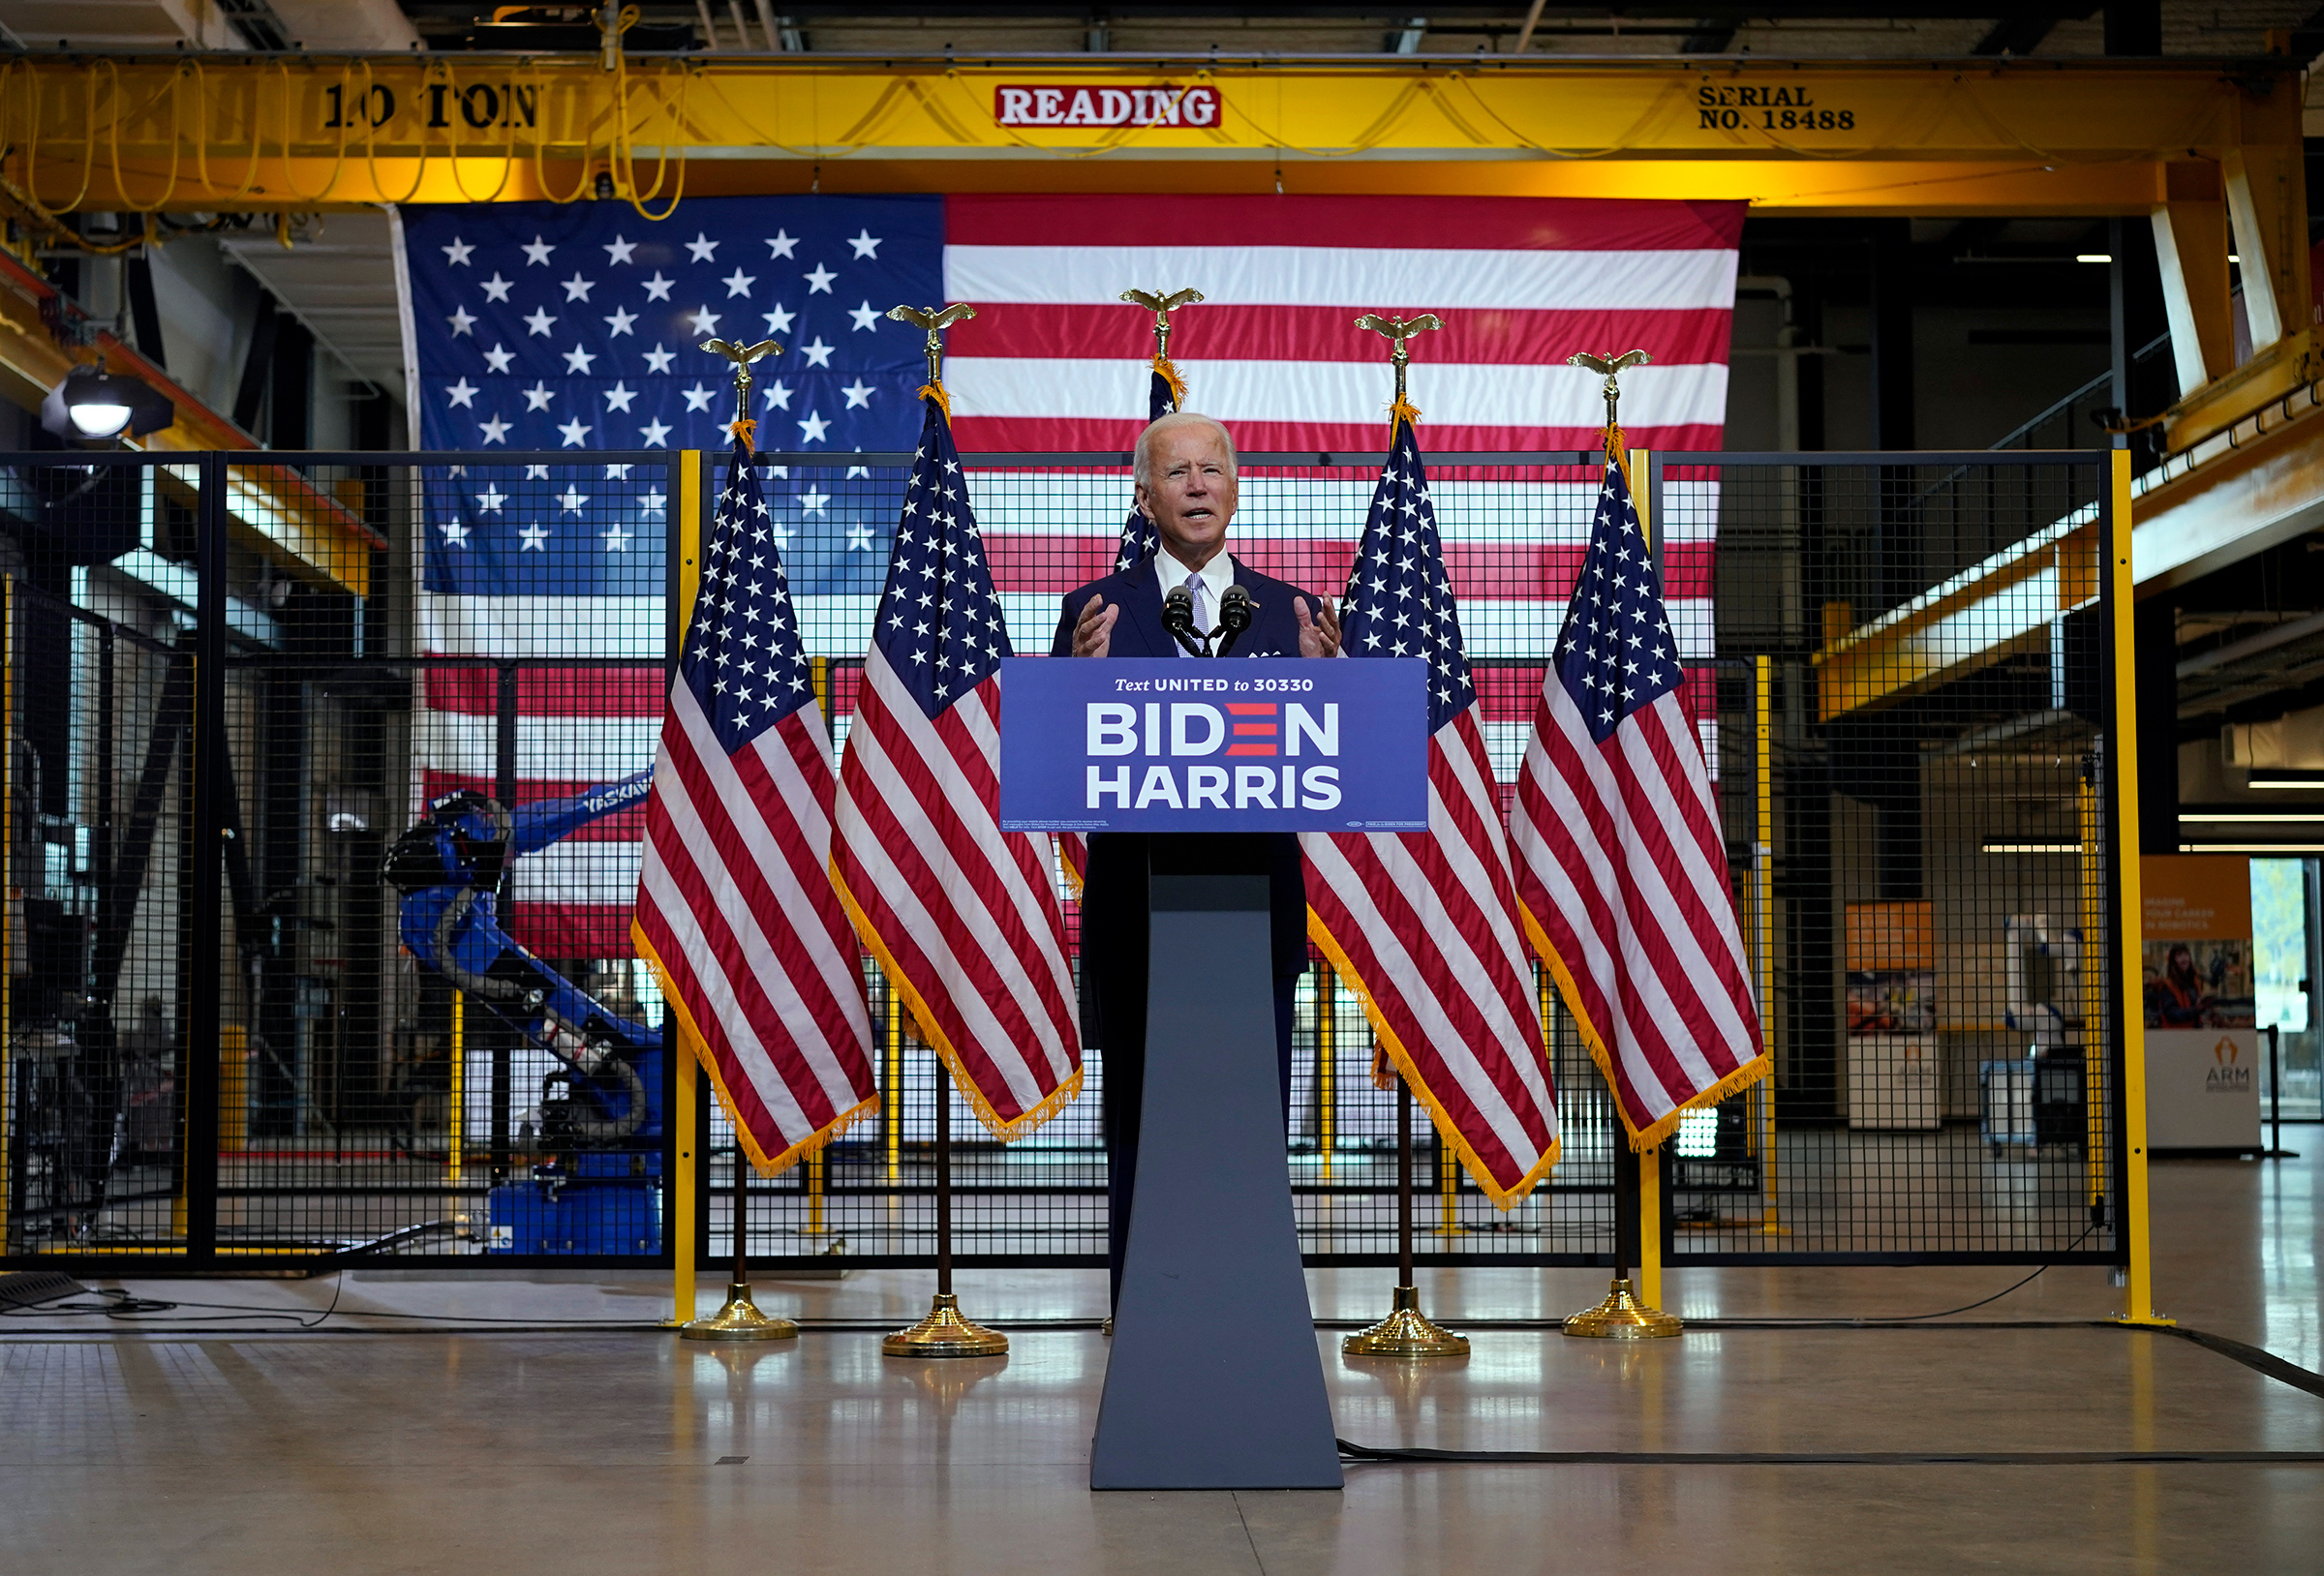 Democratic presidential candidate former Vice President Joe Biden speaks at a campaign event in Pittsburgh, Pa., Aug. 31